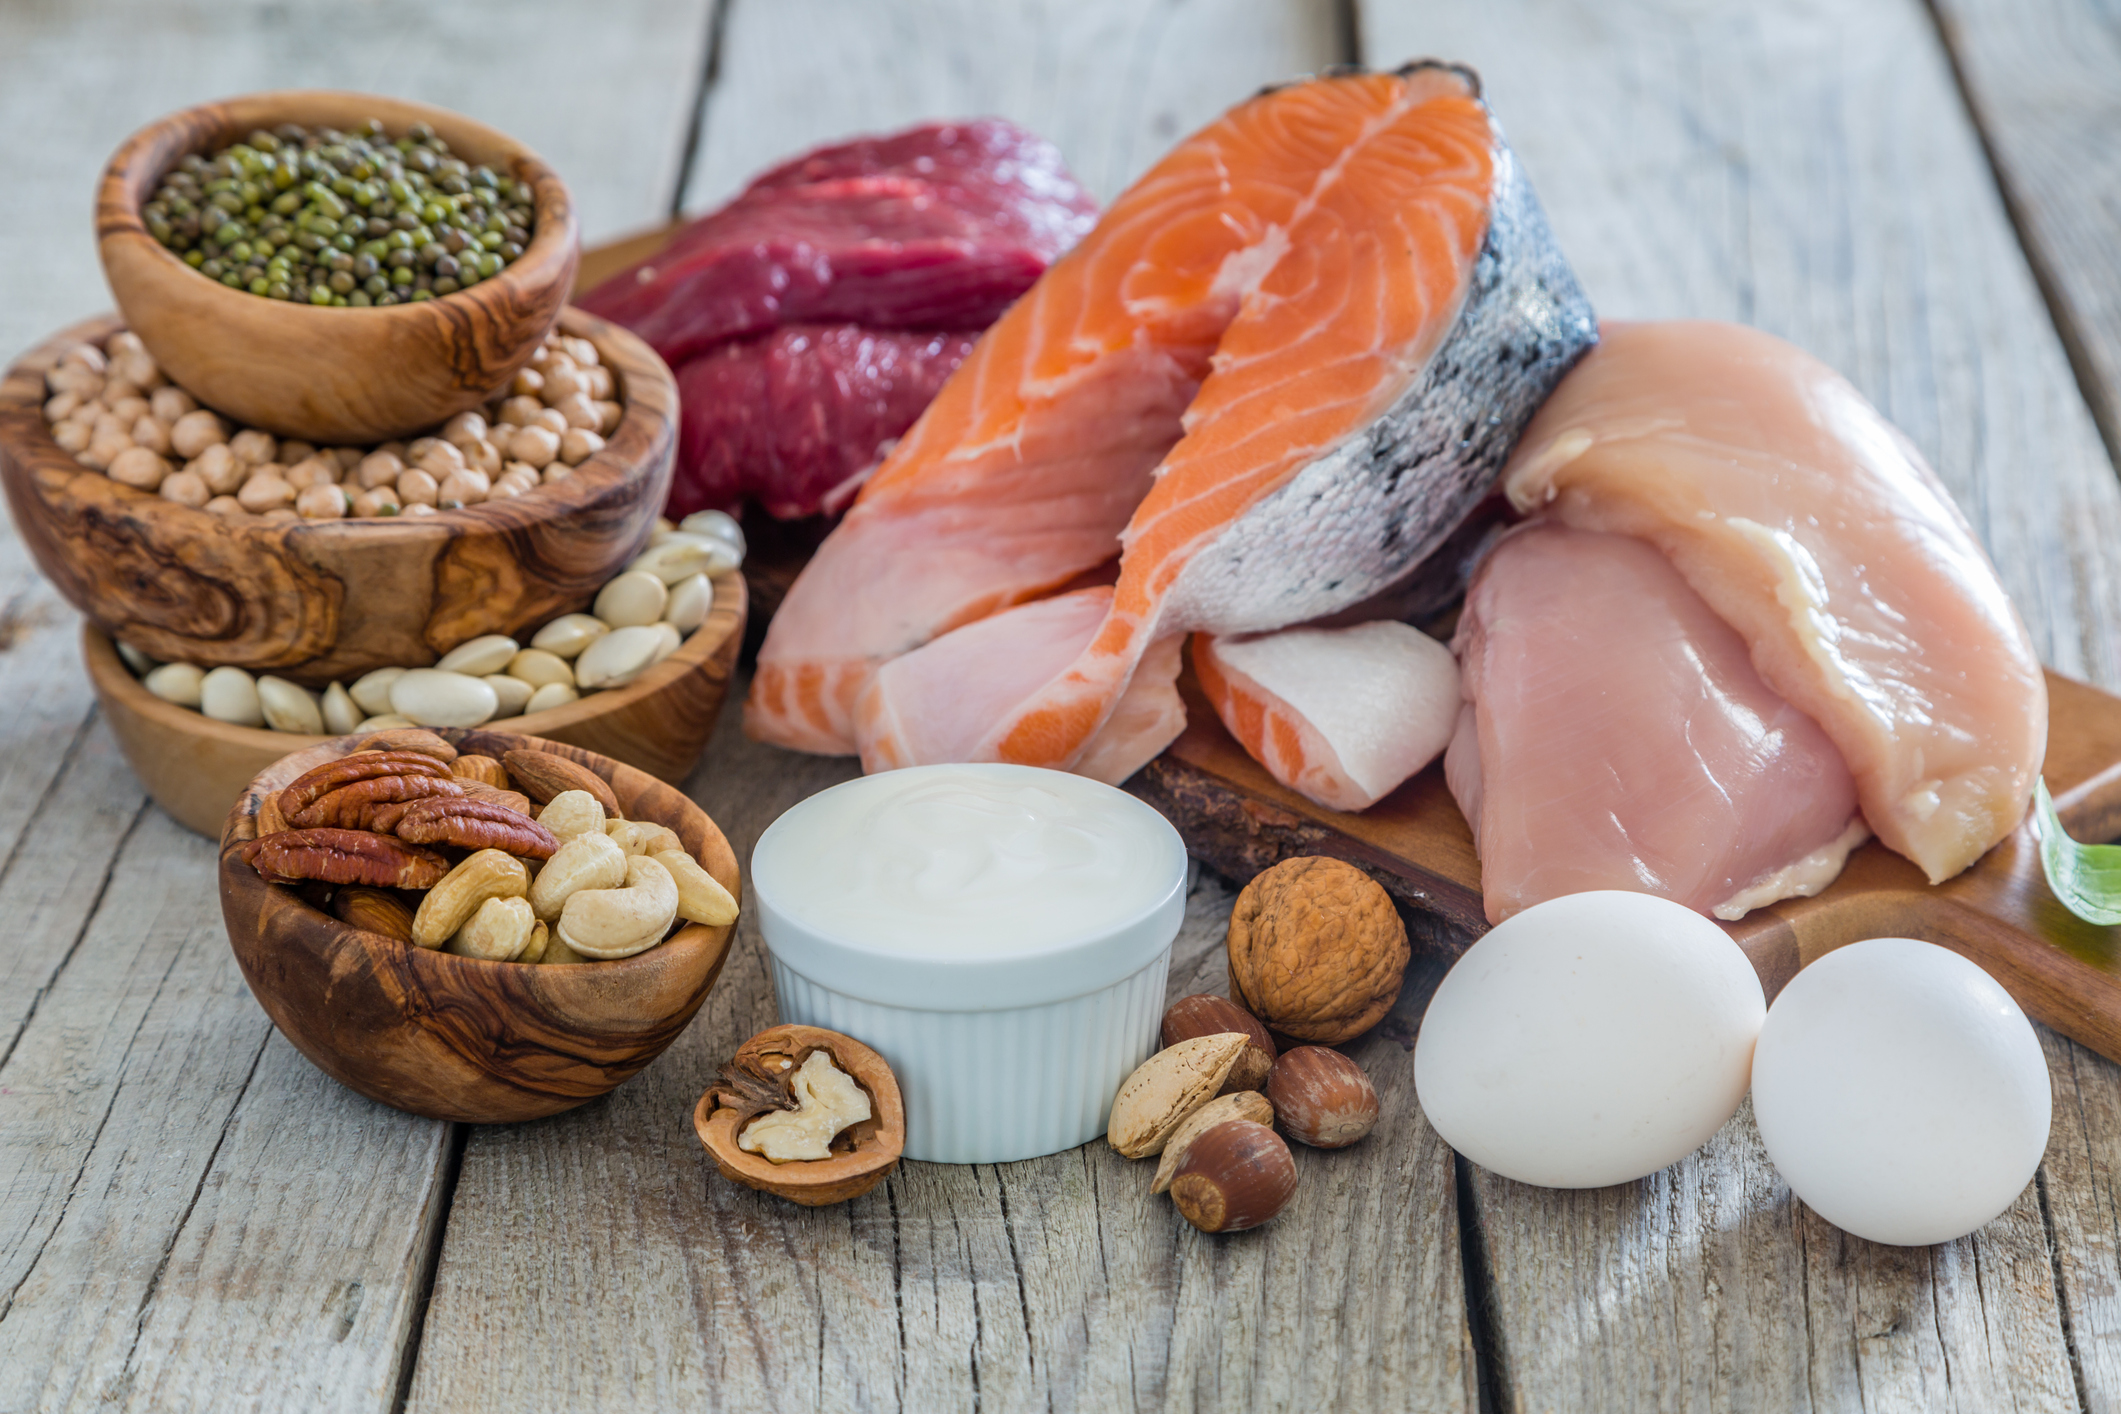 Selection of high protein food for weight loss.